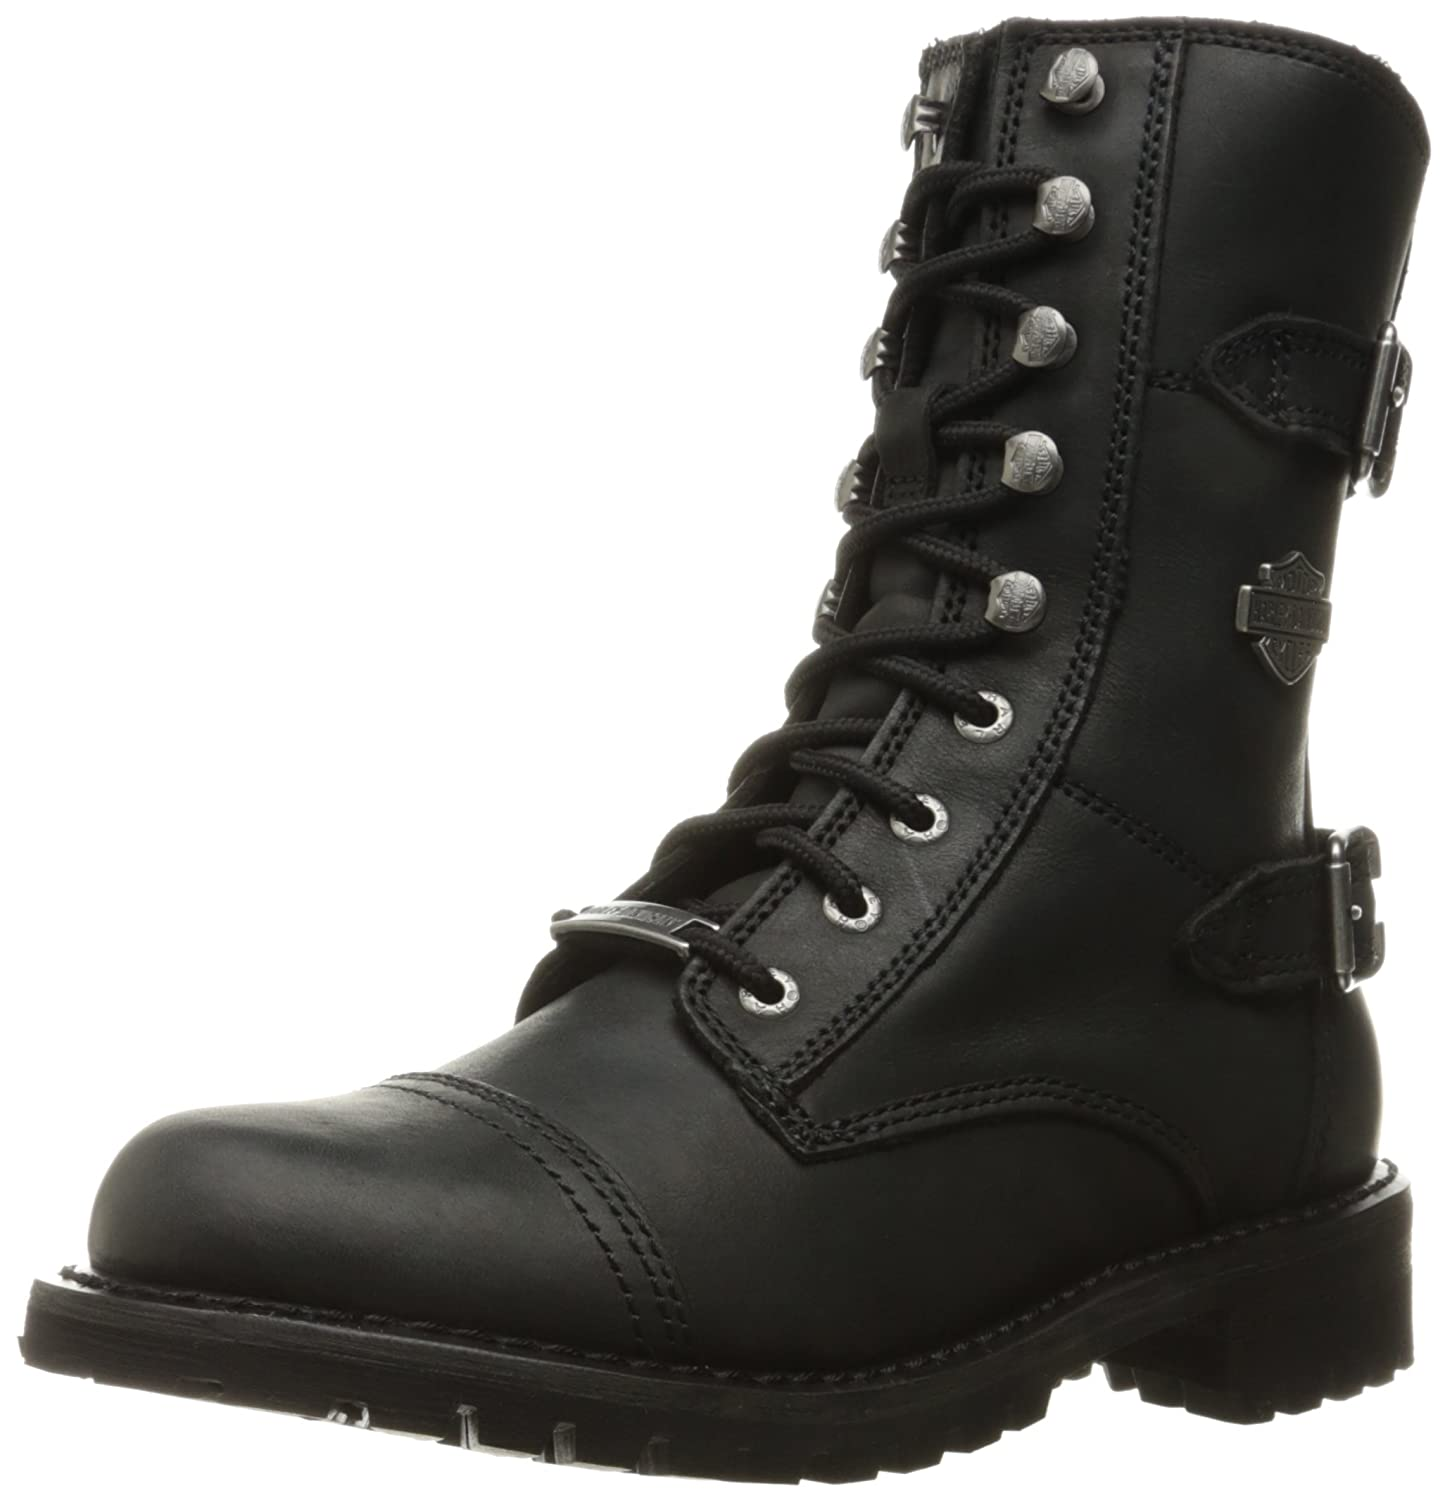 Harley-Davidson Women's Balsa Work Boot B005BFS3LM 11 B(M) US|Black